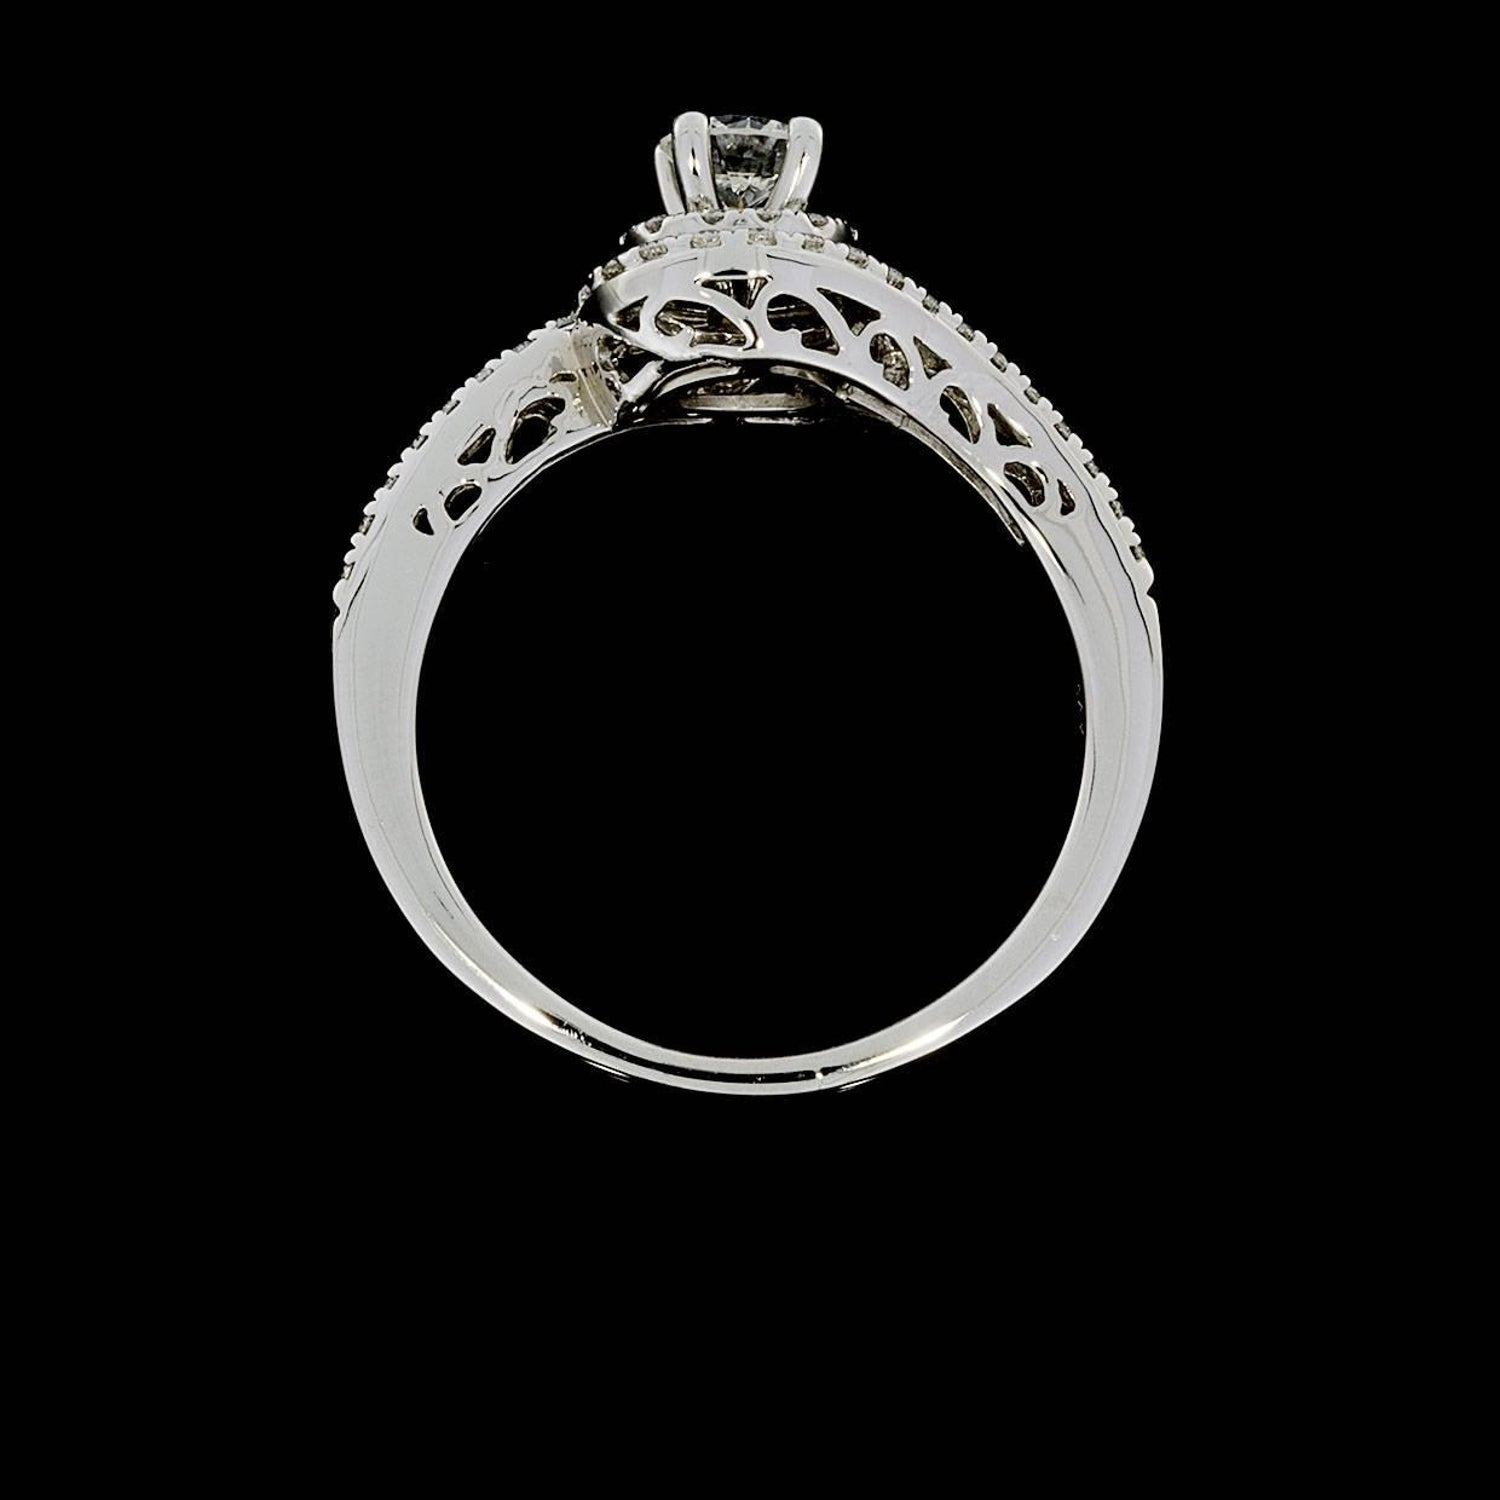 wedding of rings size halo sterling cz econtechvn engagement set beautiful band silver awesome tolkowsky source image pinterest com